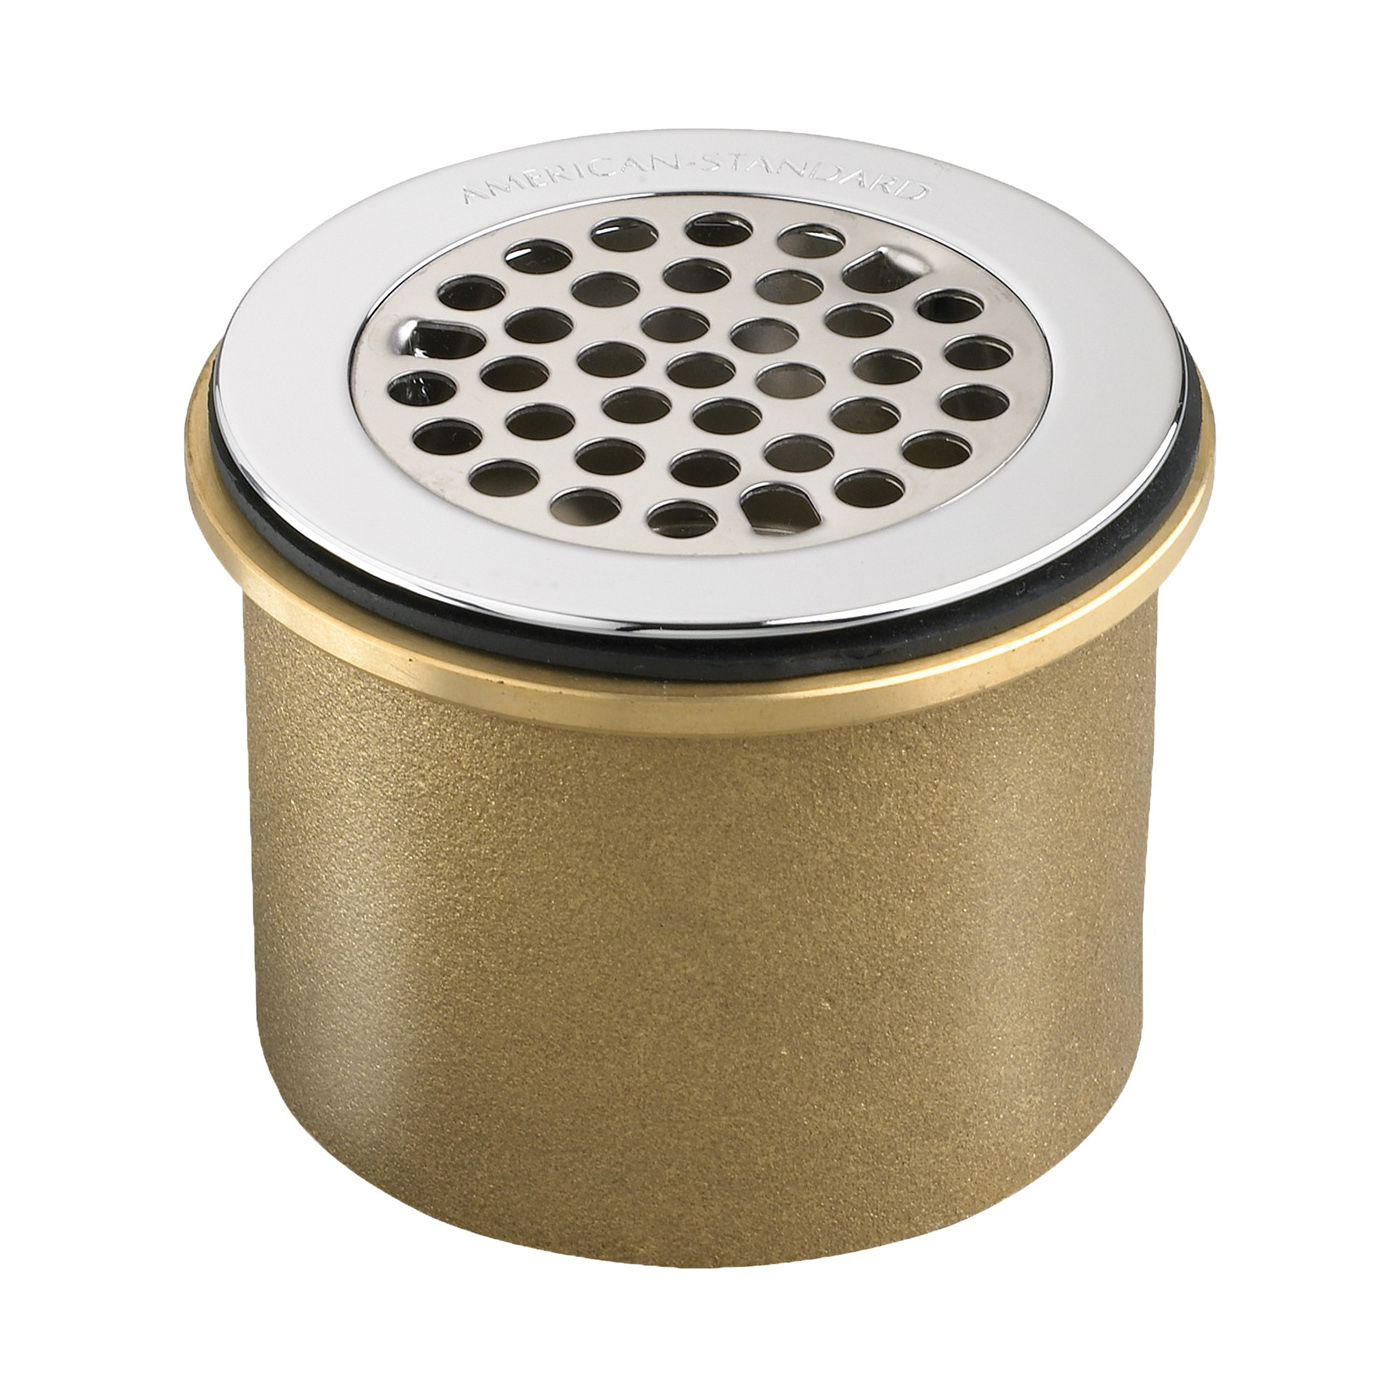 American Standard 7721.038.002 Sink Grid Drain, 3 in, IPS,  Brass Drain, Polished Chrome, Import